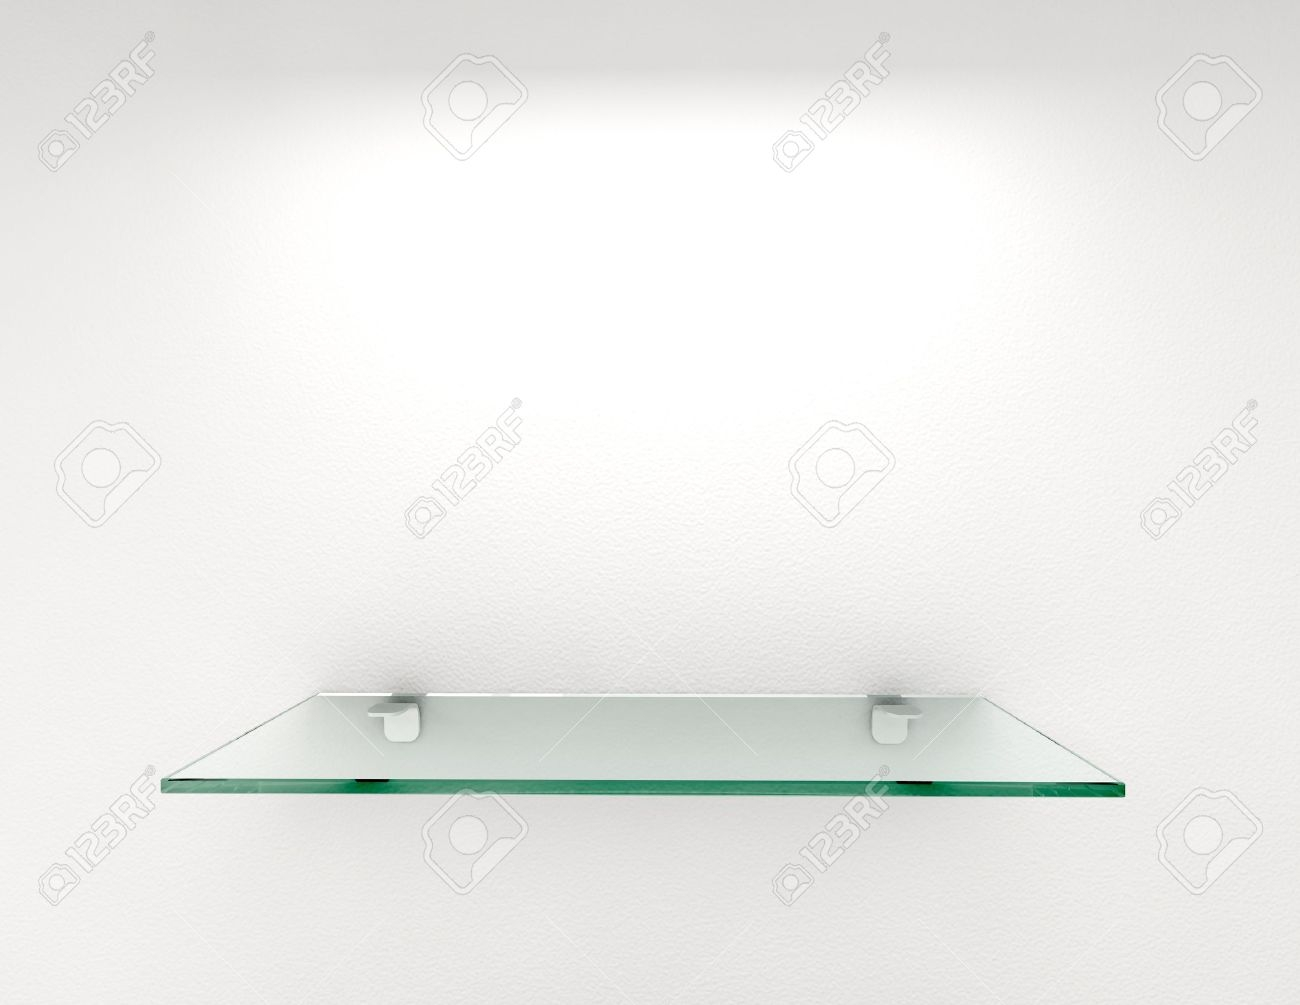 Floating Glass Shelf Kits Buy Decorative Glass Online The For With Regard To Free Floating Glass Shelves (Image 4 of 15)